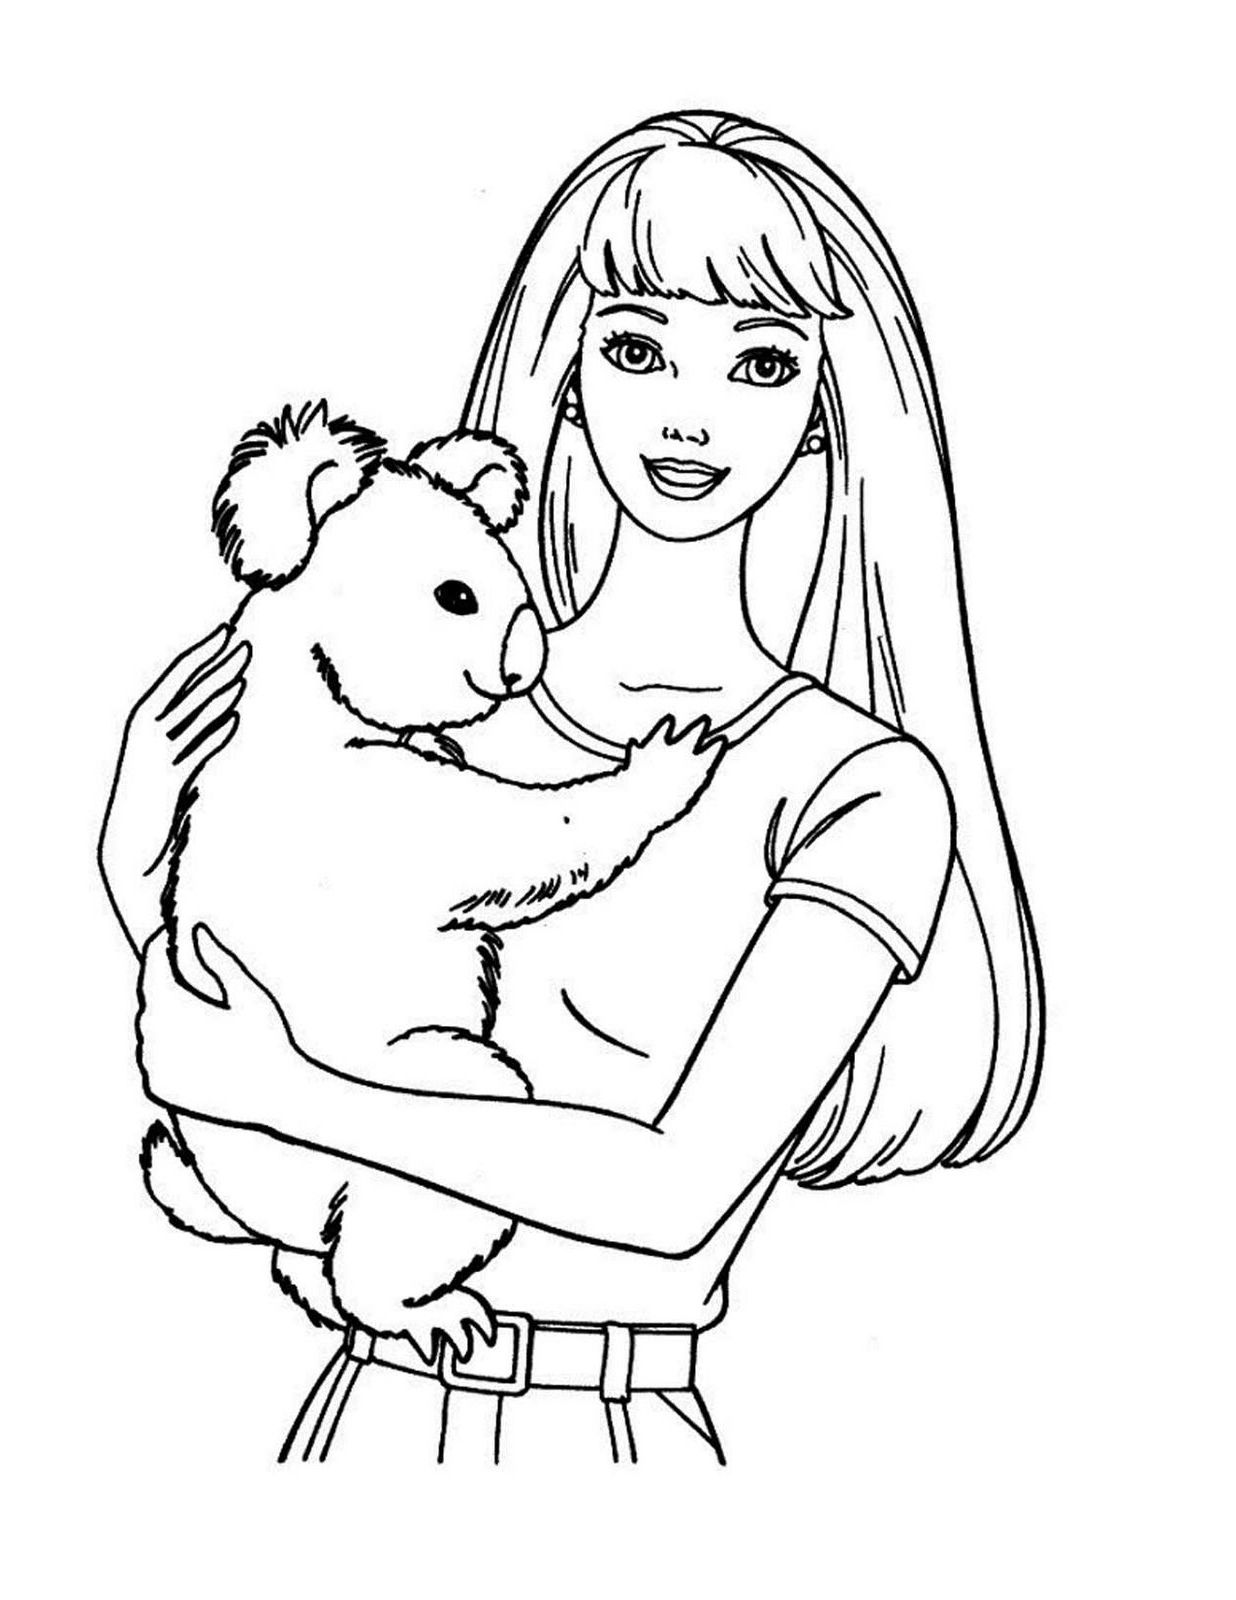 Barbie Coloring Pages With Bear Embroidery Pinterest Barbie